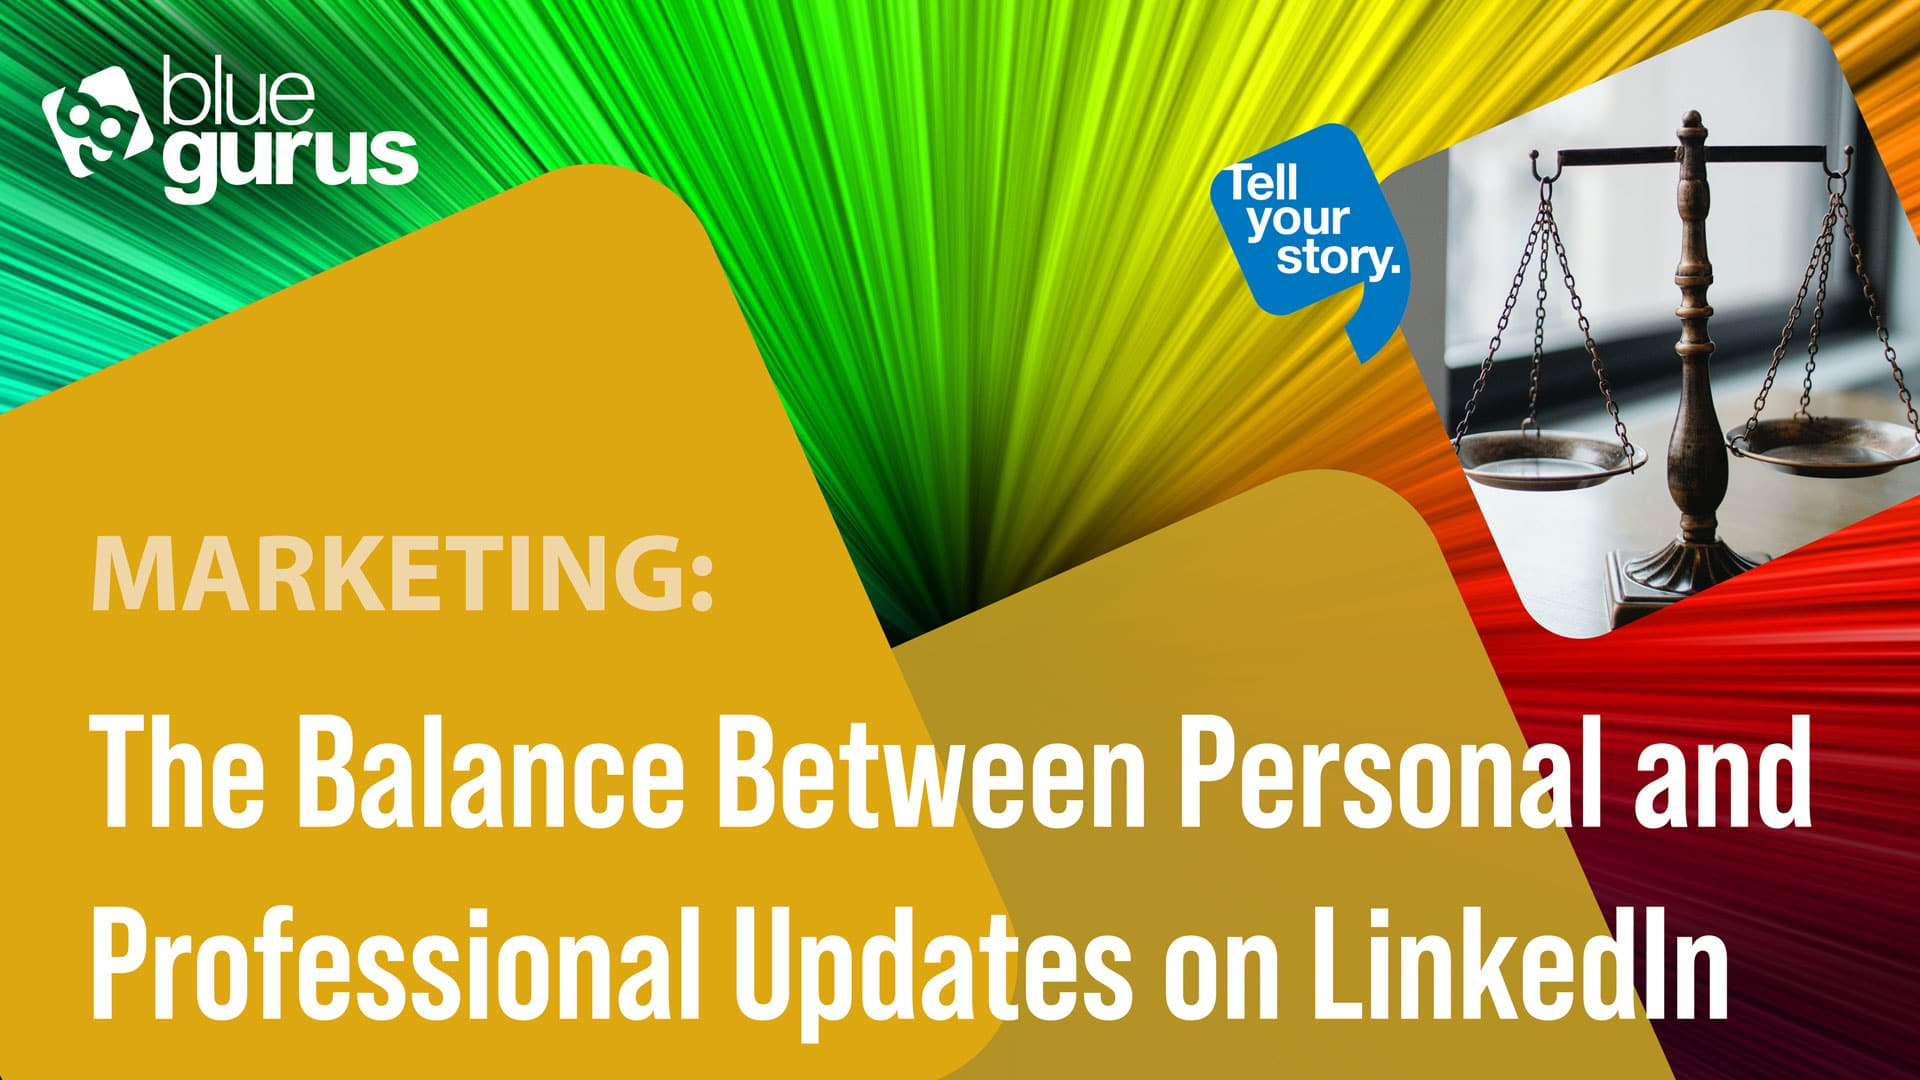 The Balance Between Personal and Professional Updates on LinkedIn